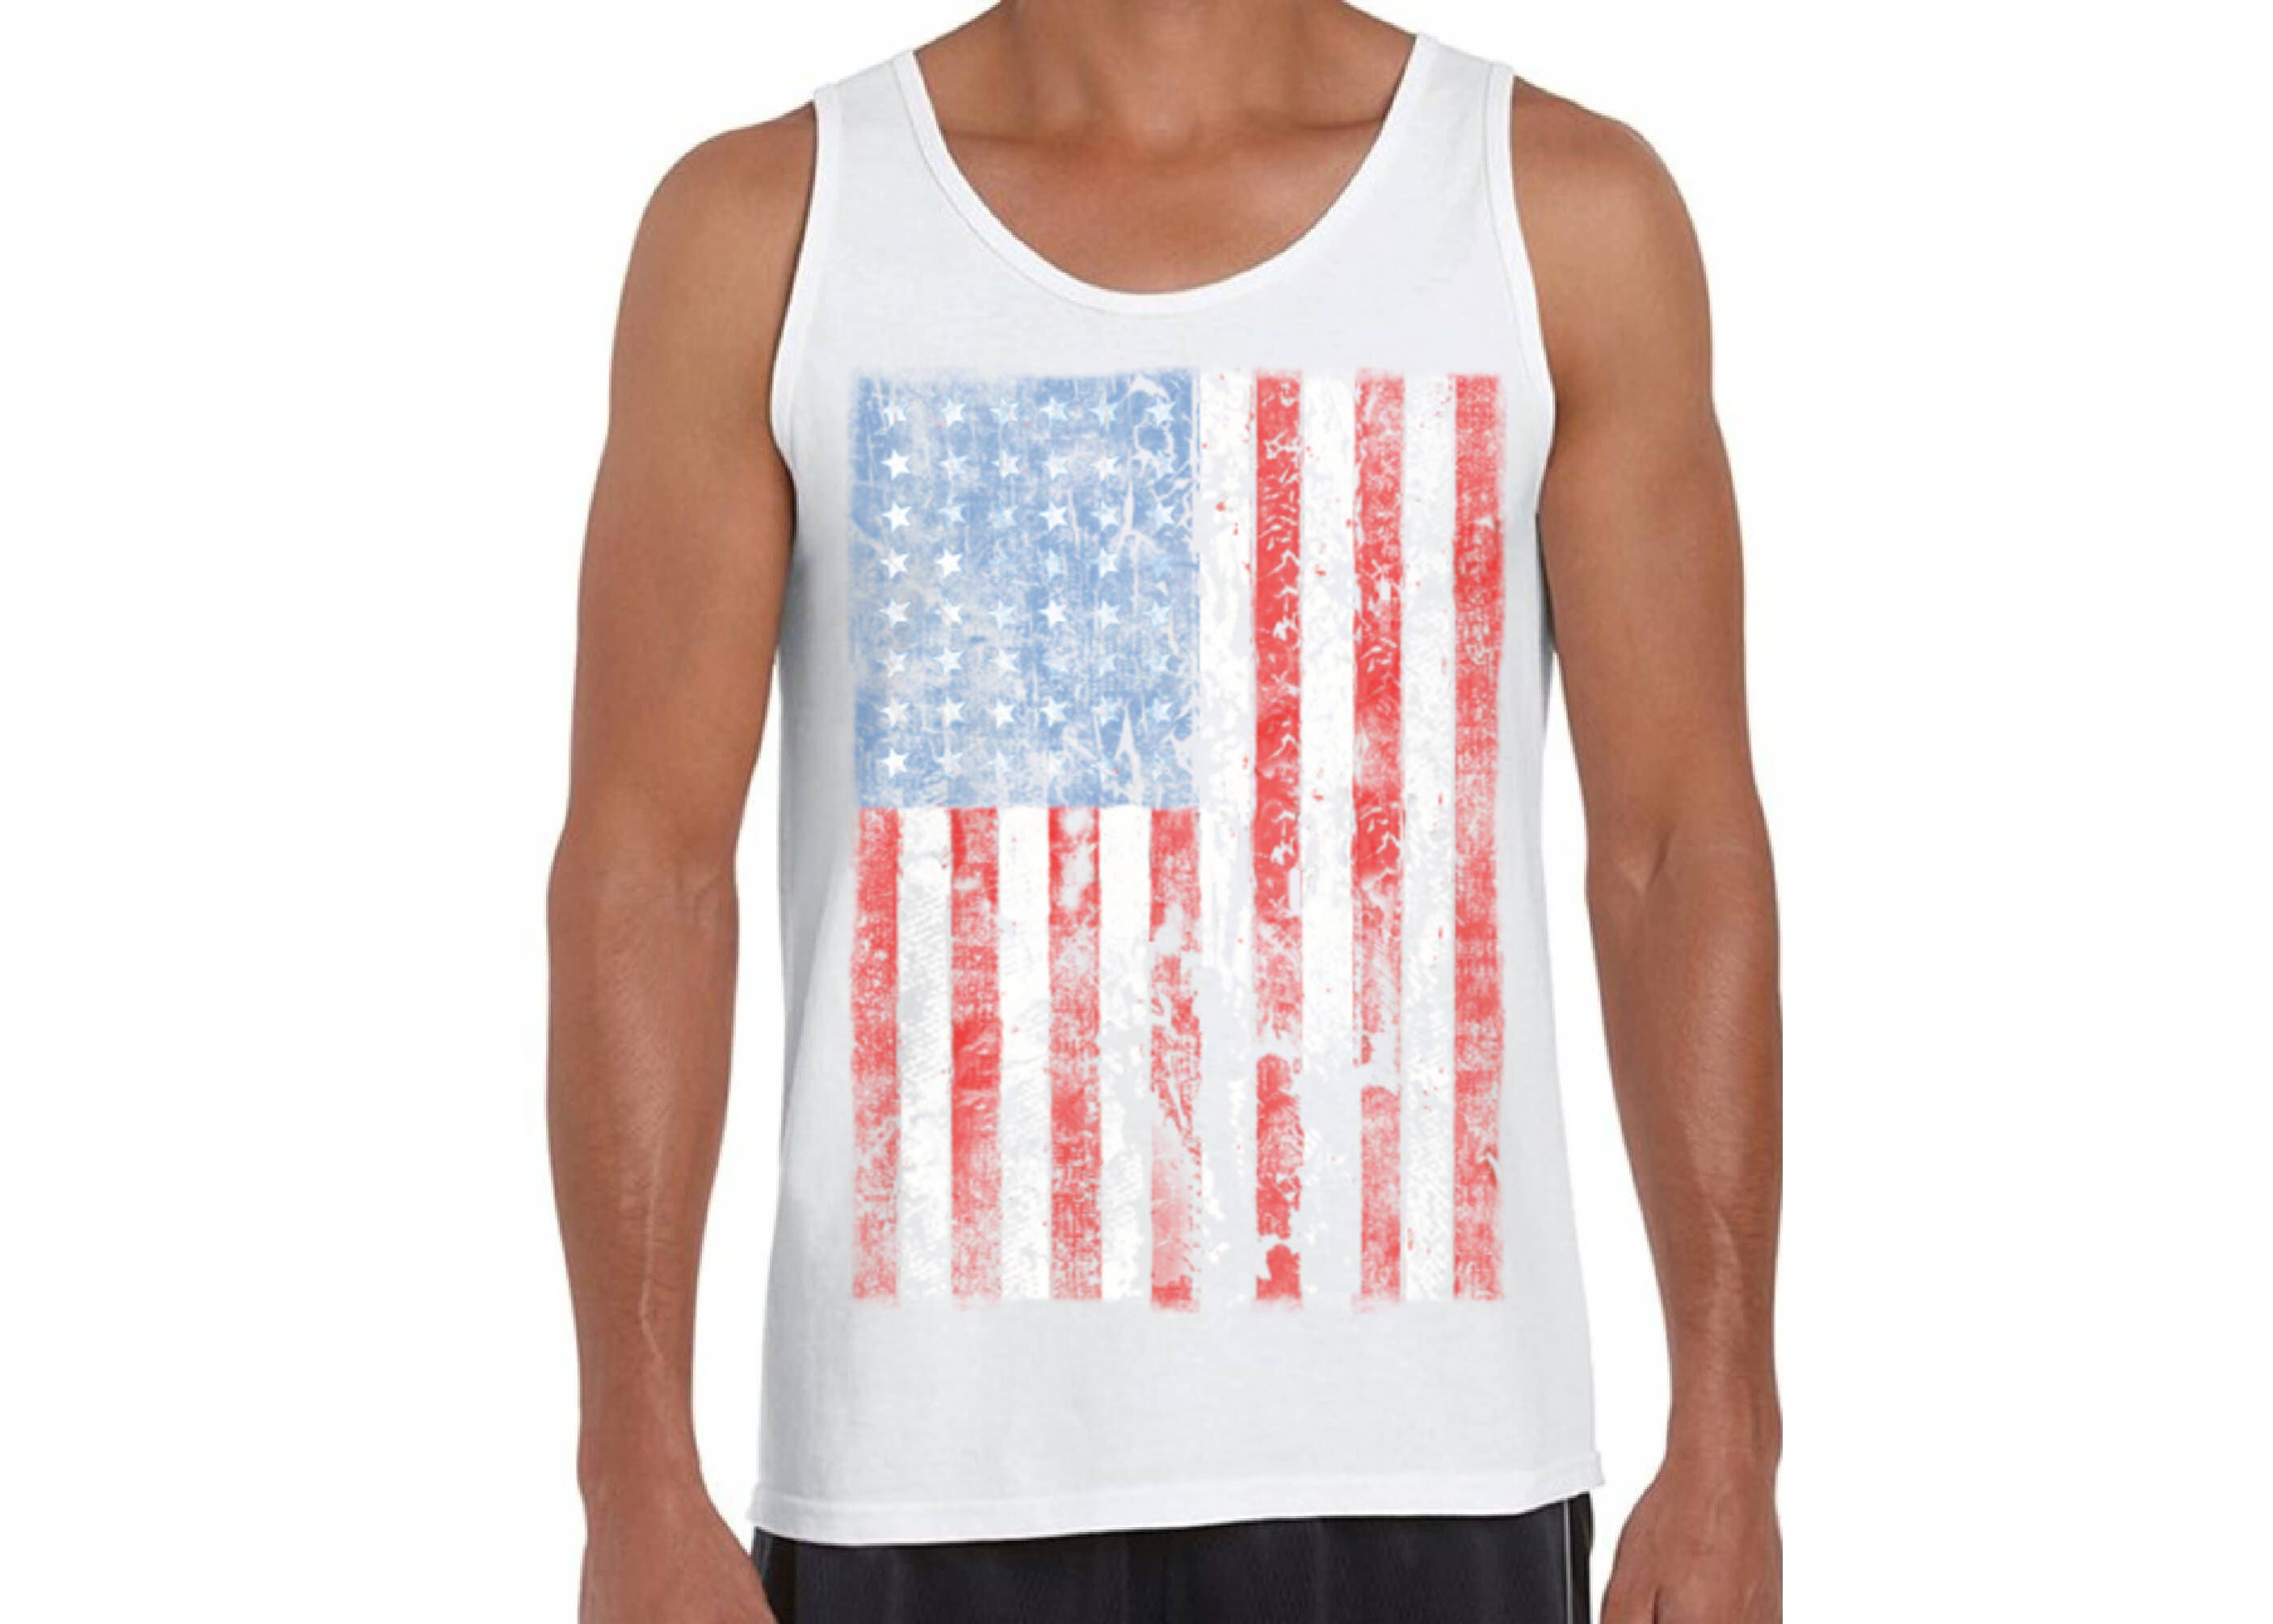 46d0abdd5ab0f USA Distressed American Flag Tank Tops for Men USA Graphic